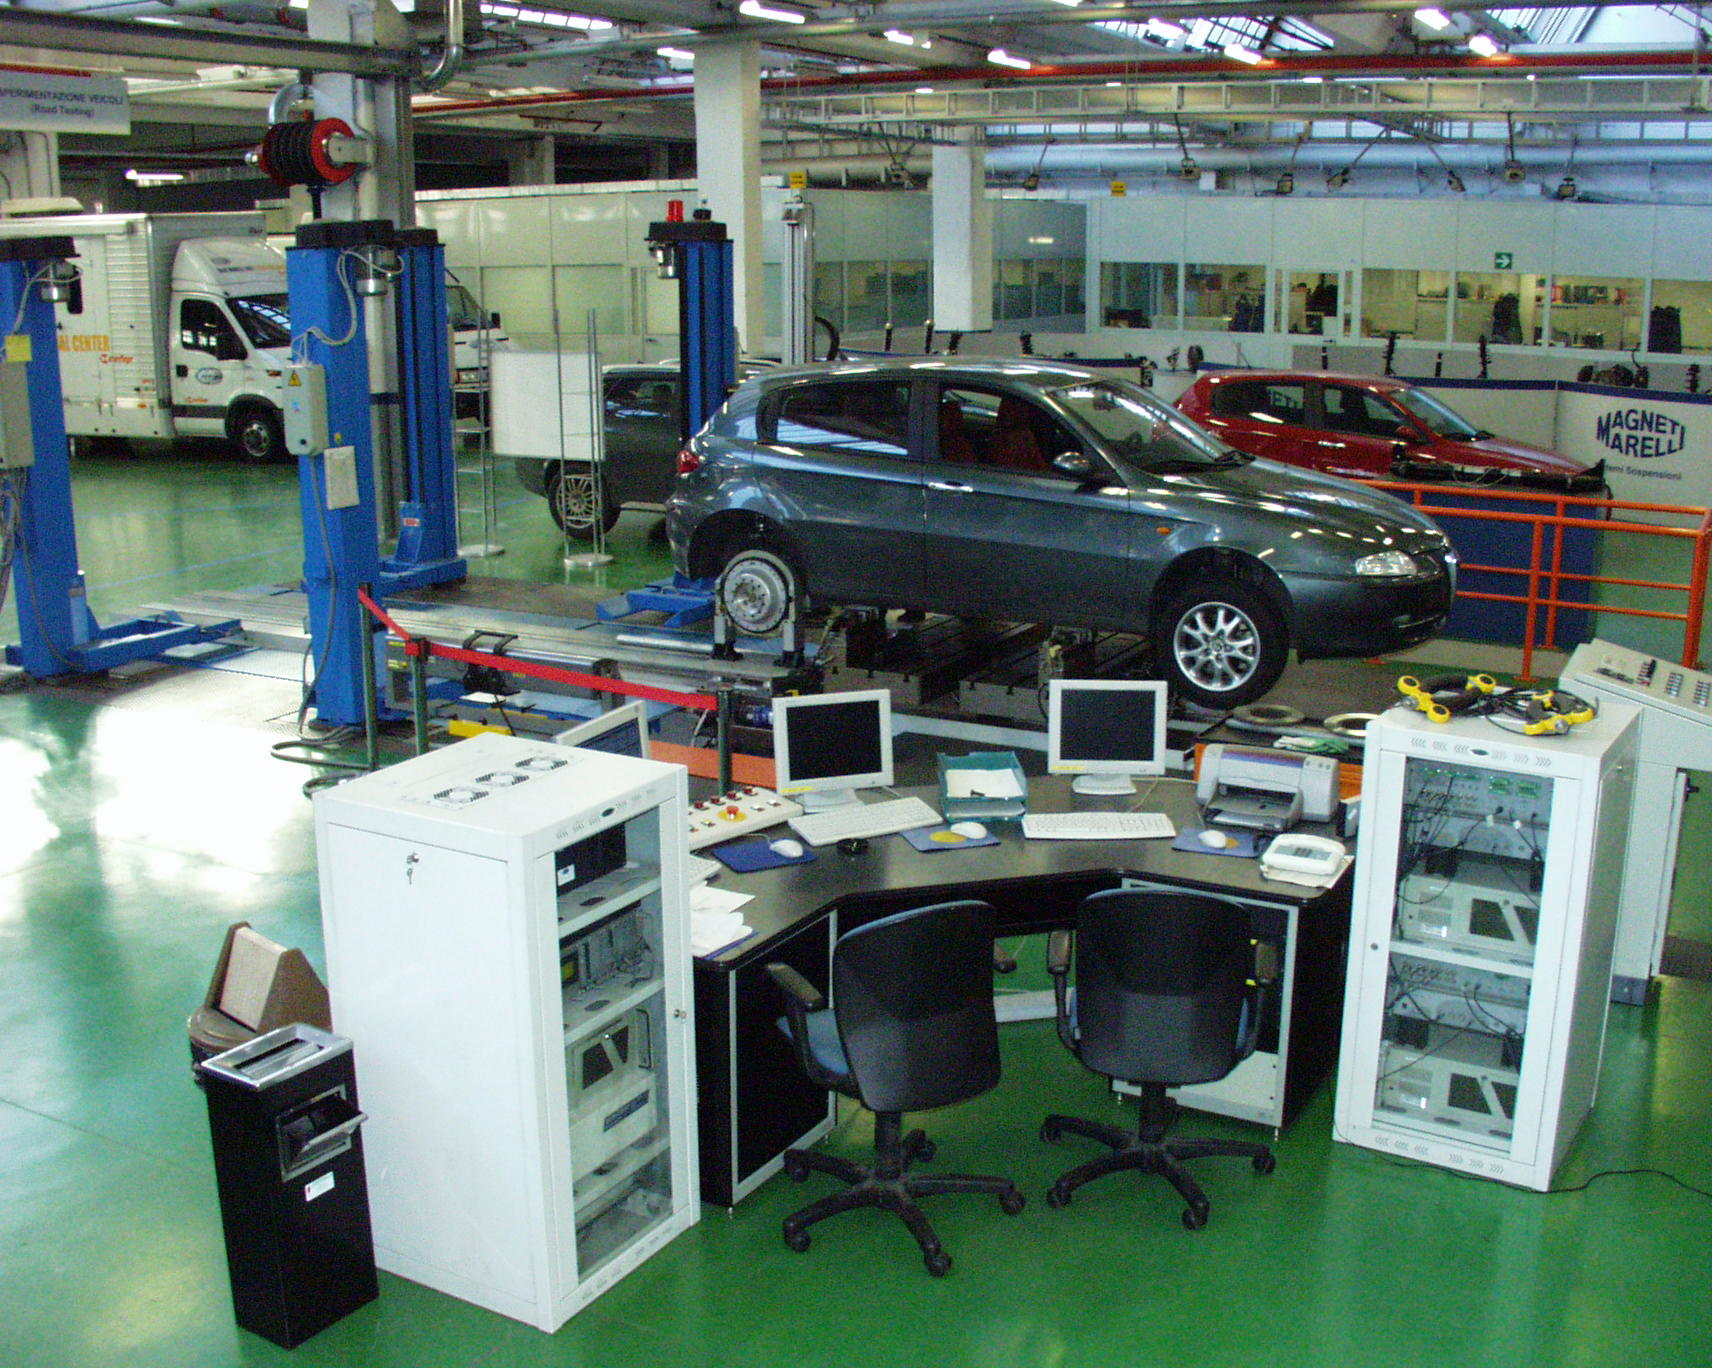 Automotive Advertising Agencies Focus on People Using Social Media Vs Product or Price